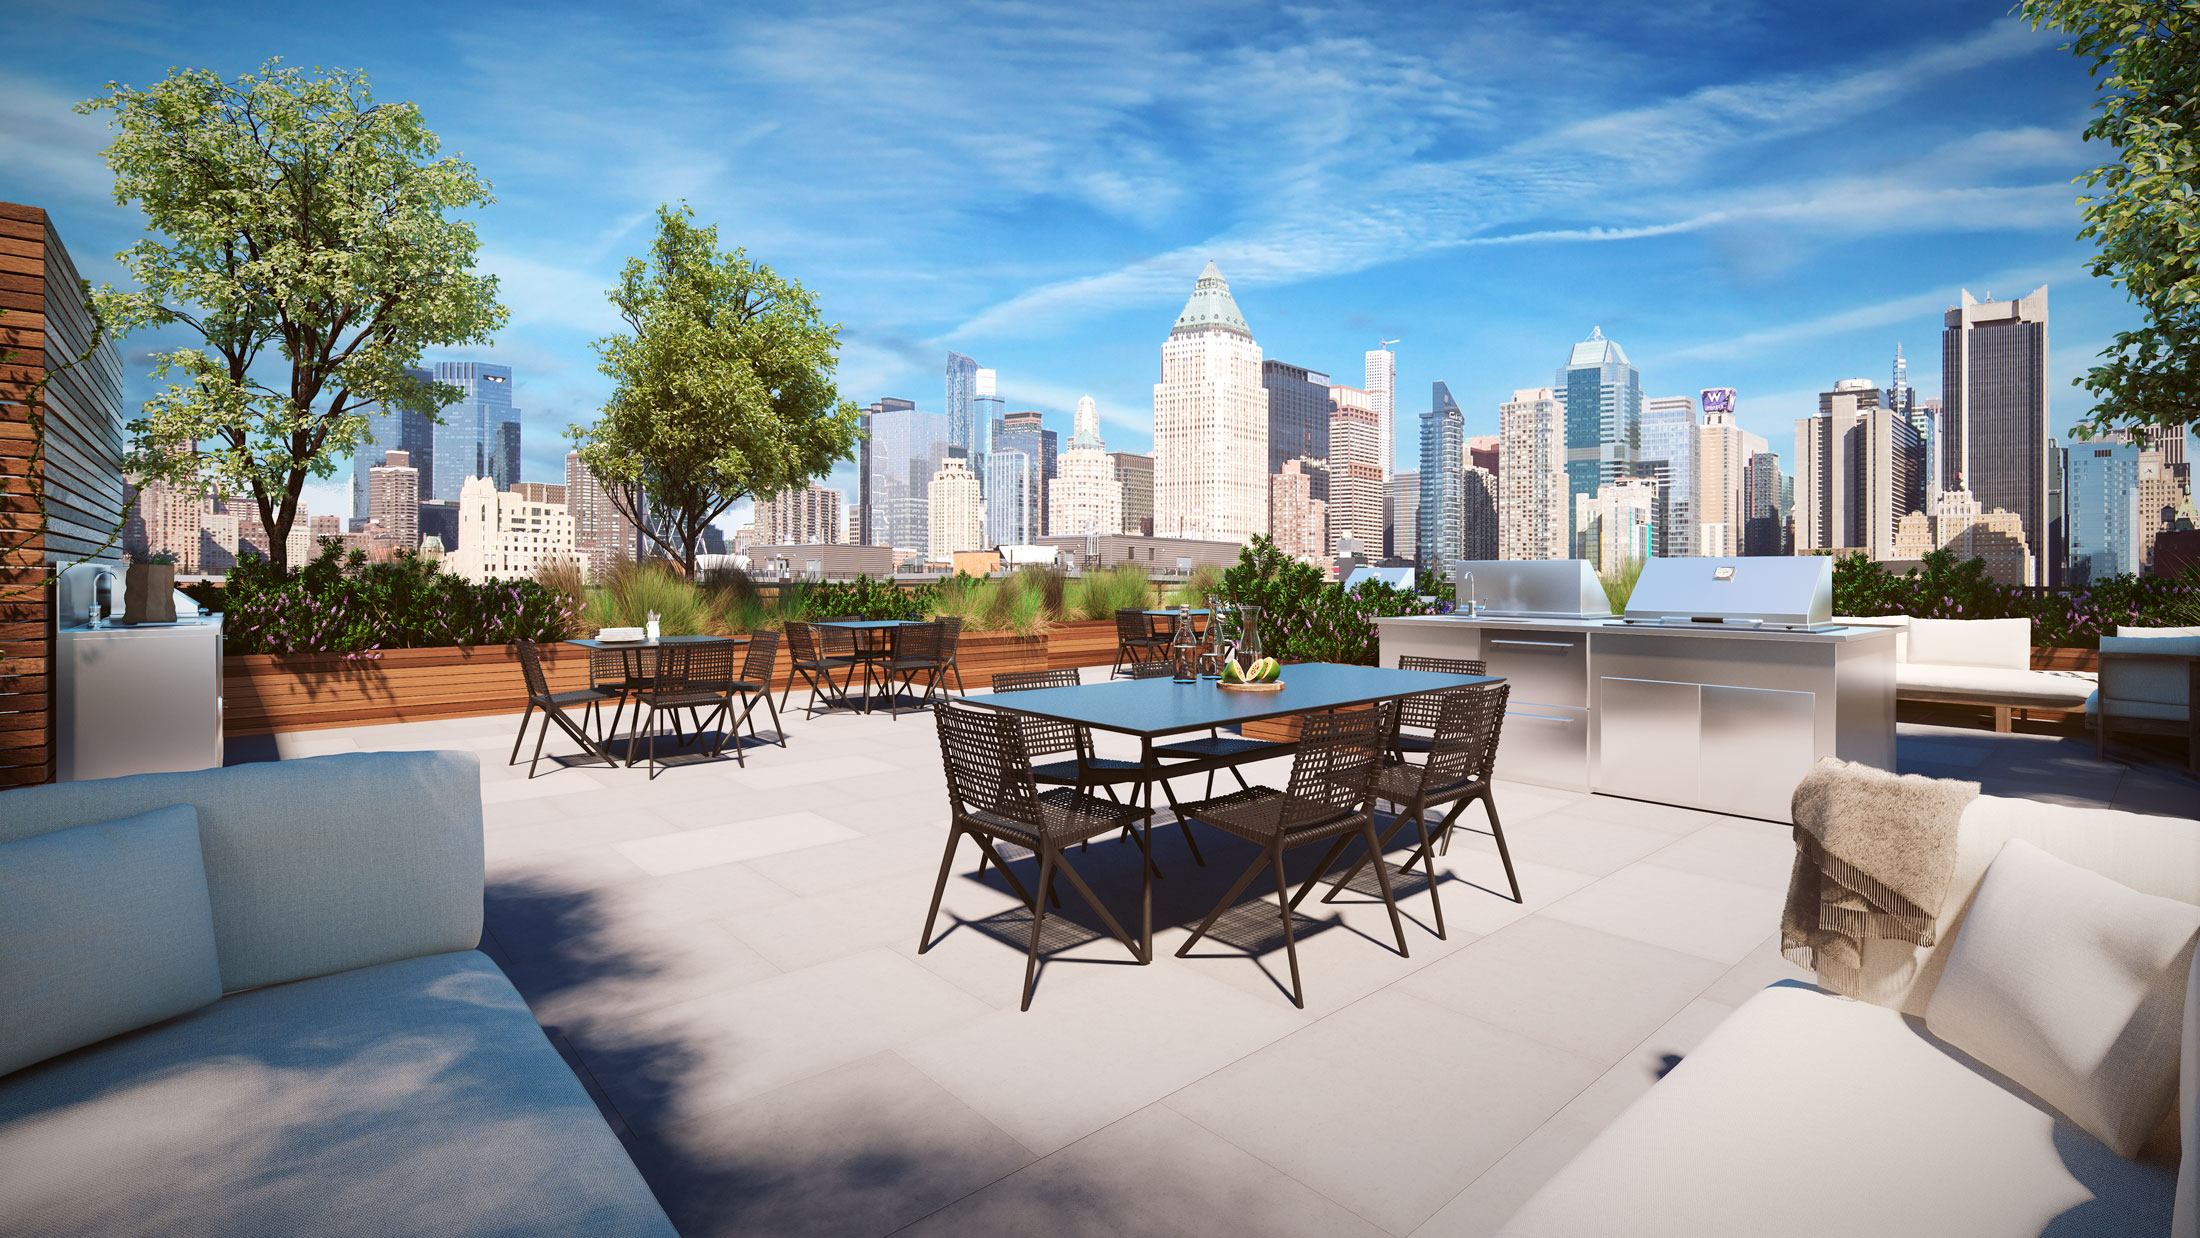 Architectural Rendering of the rooftop of the 535 West 43rd Street project located in Hell's Kitchen, New York City